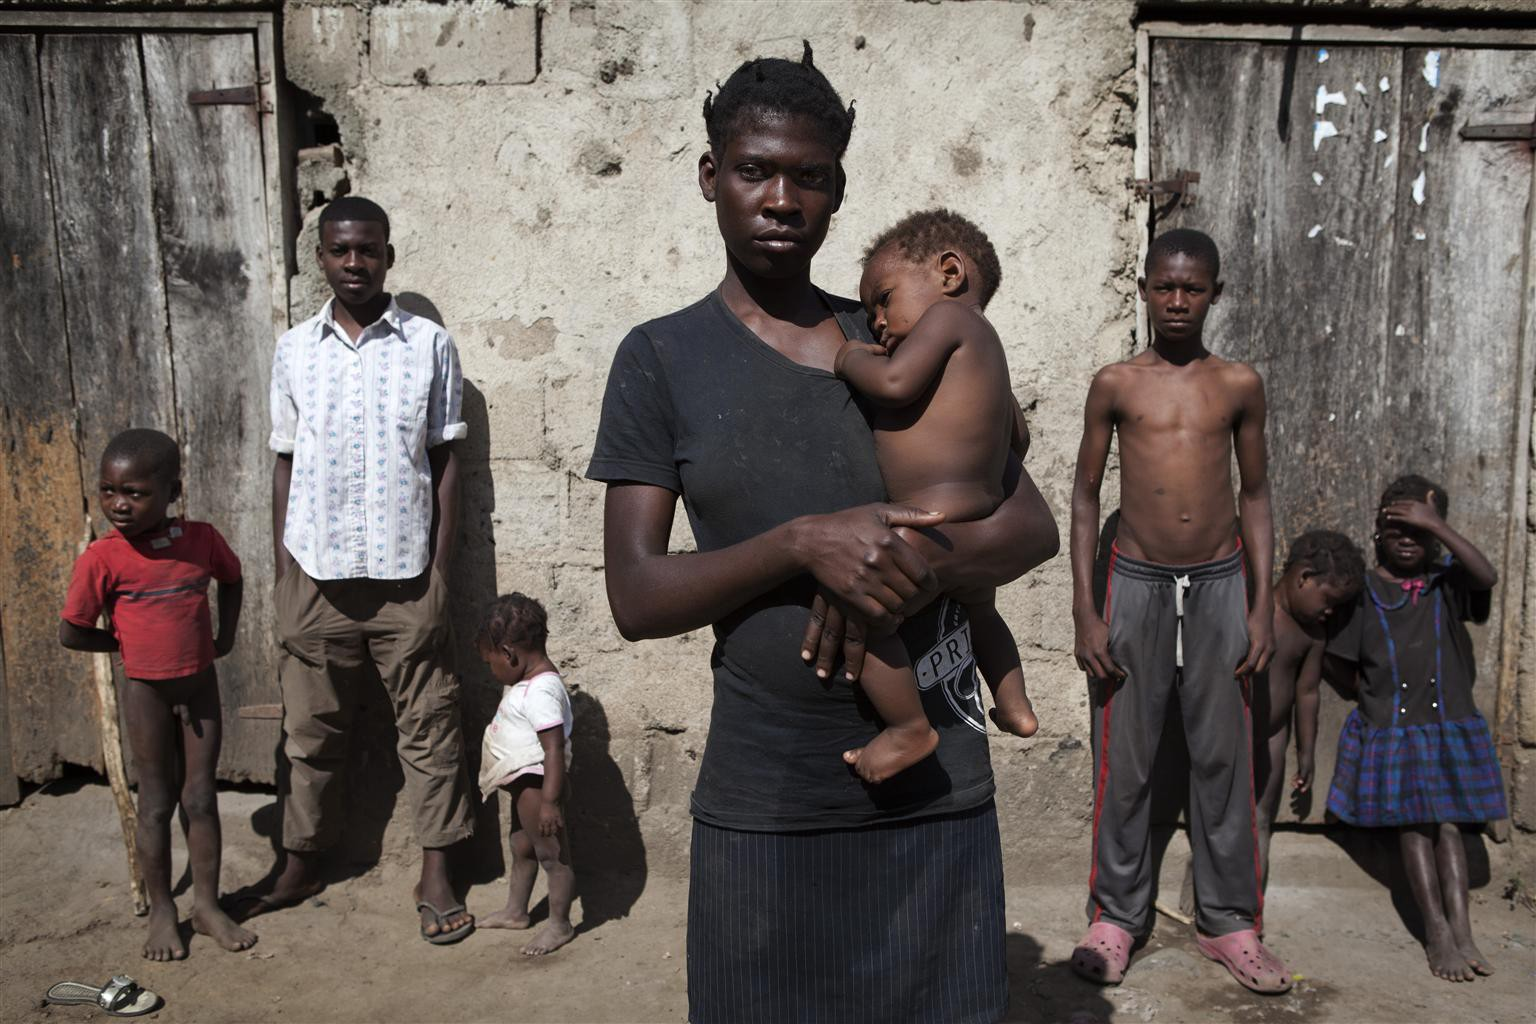 conclusion to poverty in haiti Read this essay on poverty in haiti come browse our large digital warehouse of free sample essays get the knowledge you need in order to pass your classes and more.